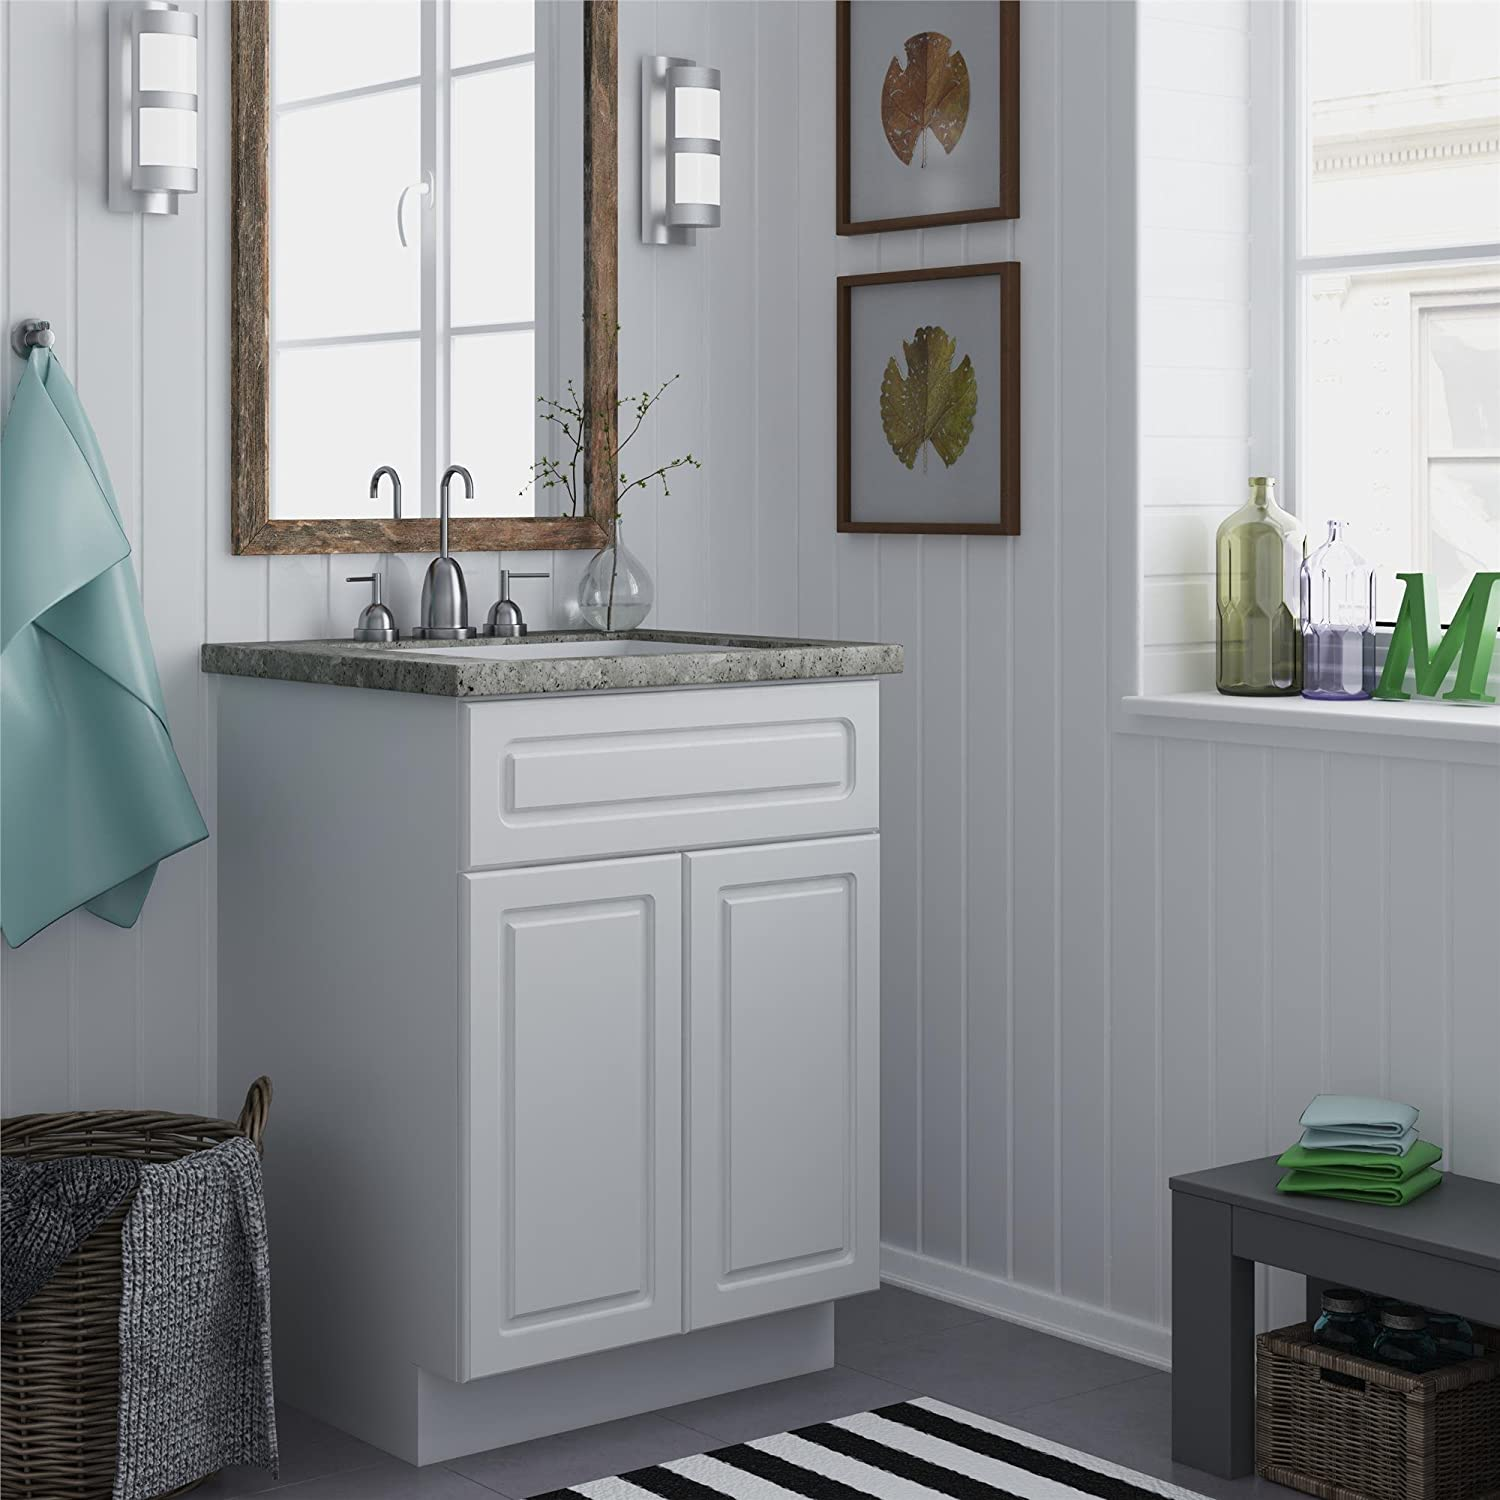 Amazon Ameriwood Heartland Cabinetry Keystone Bath Vanity